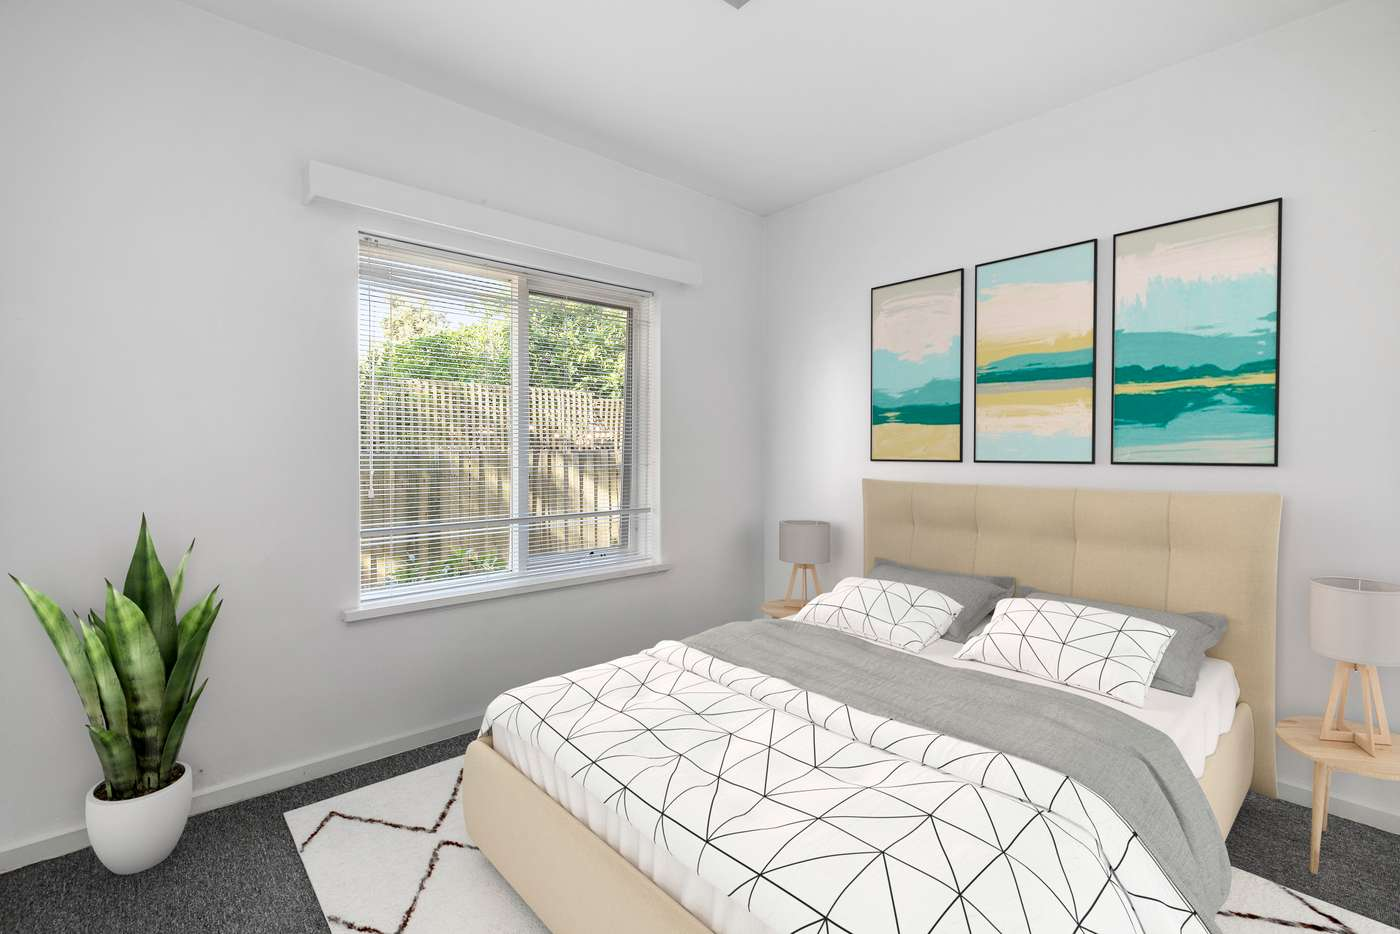 Fifth view of Homely apartment listing, 4/297 St Kilda Street, Brighton VIC 3186